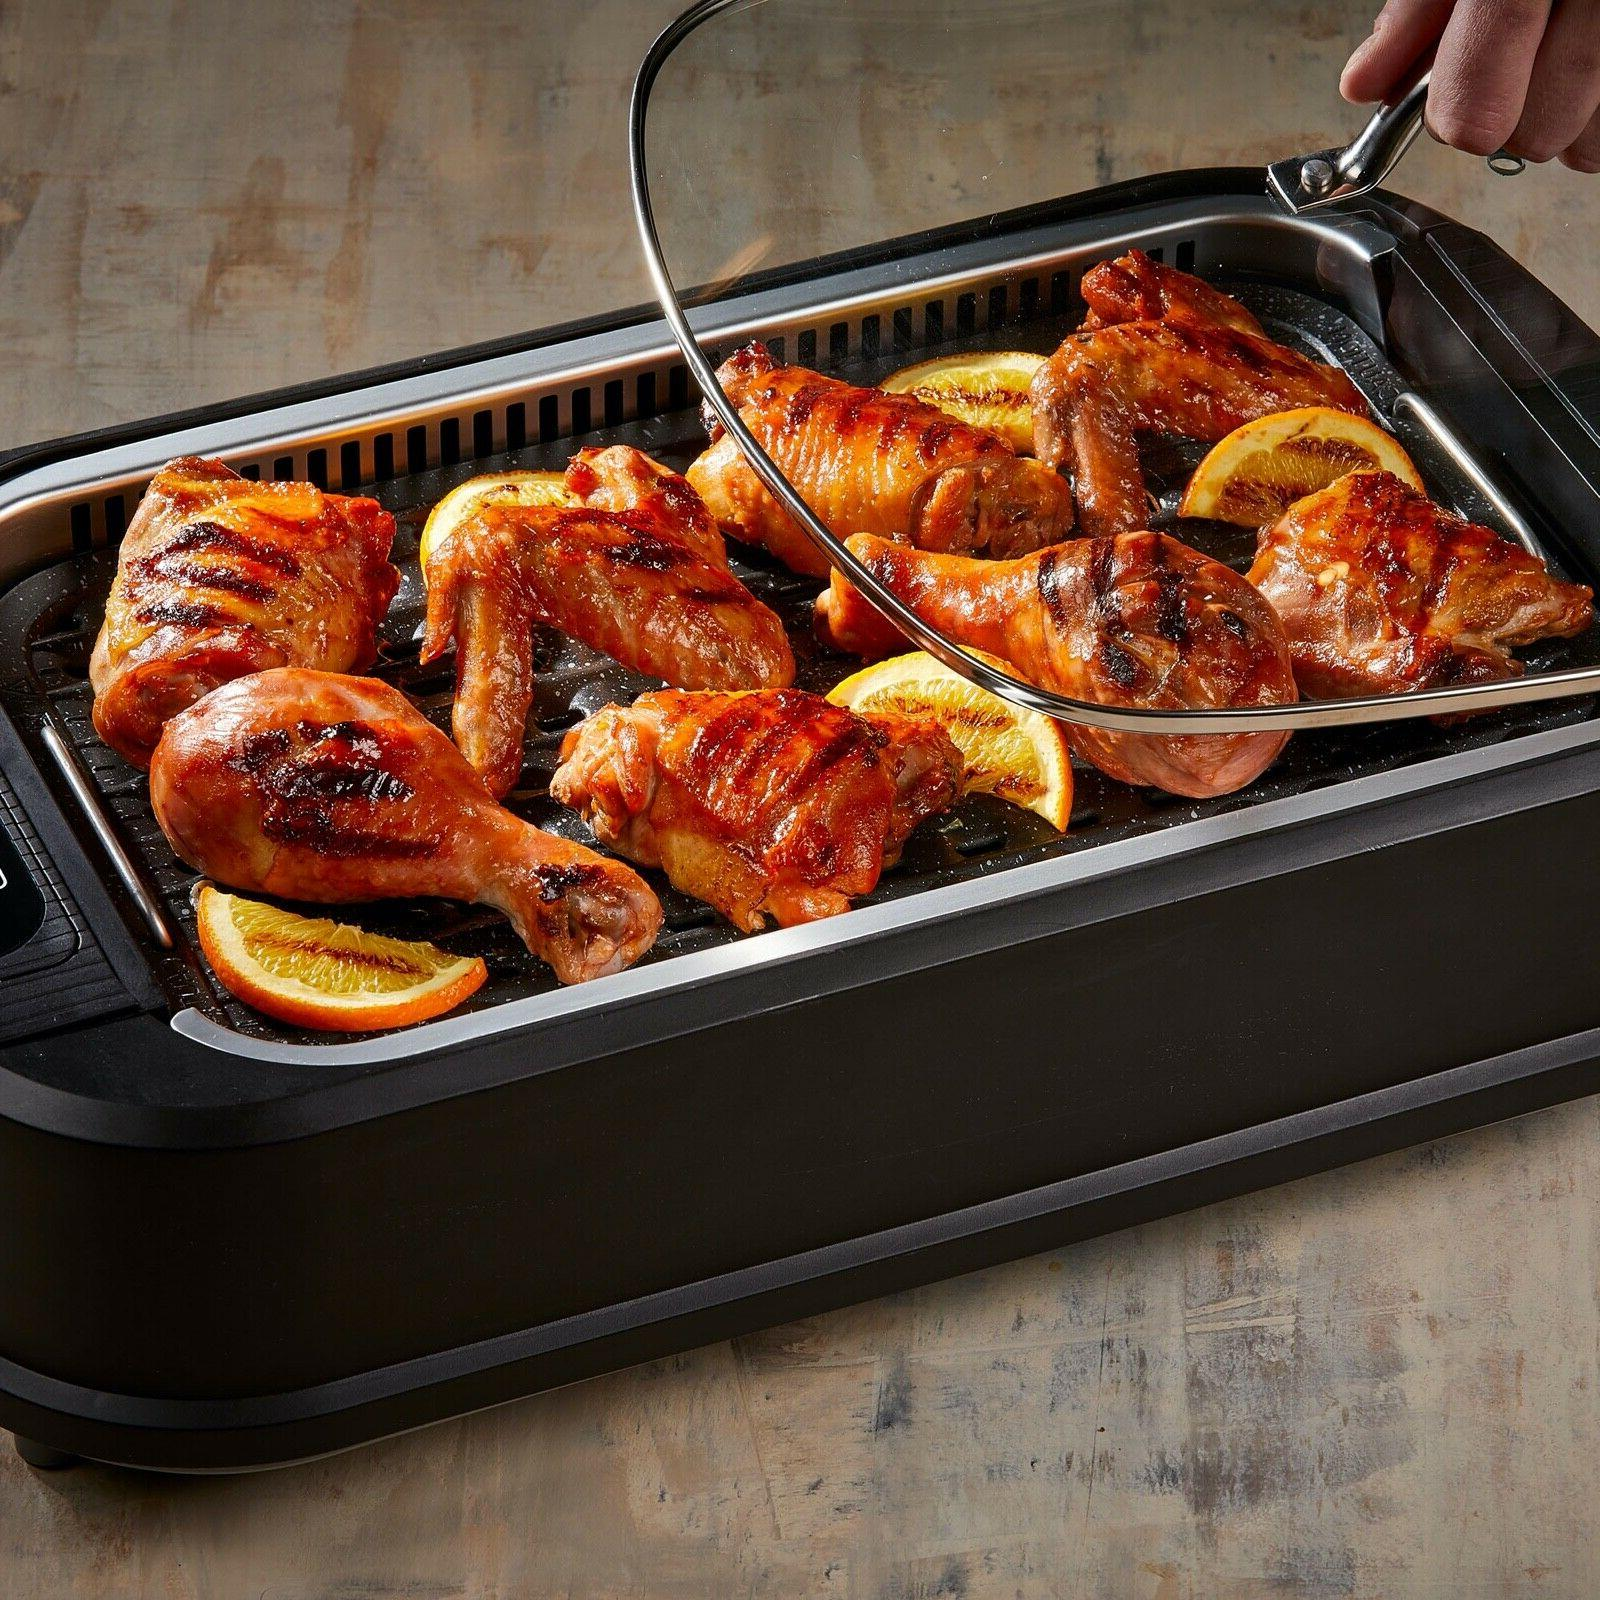 smokeless indoor electric grill cerami tech non